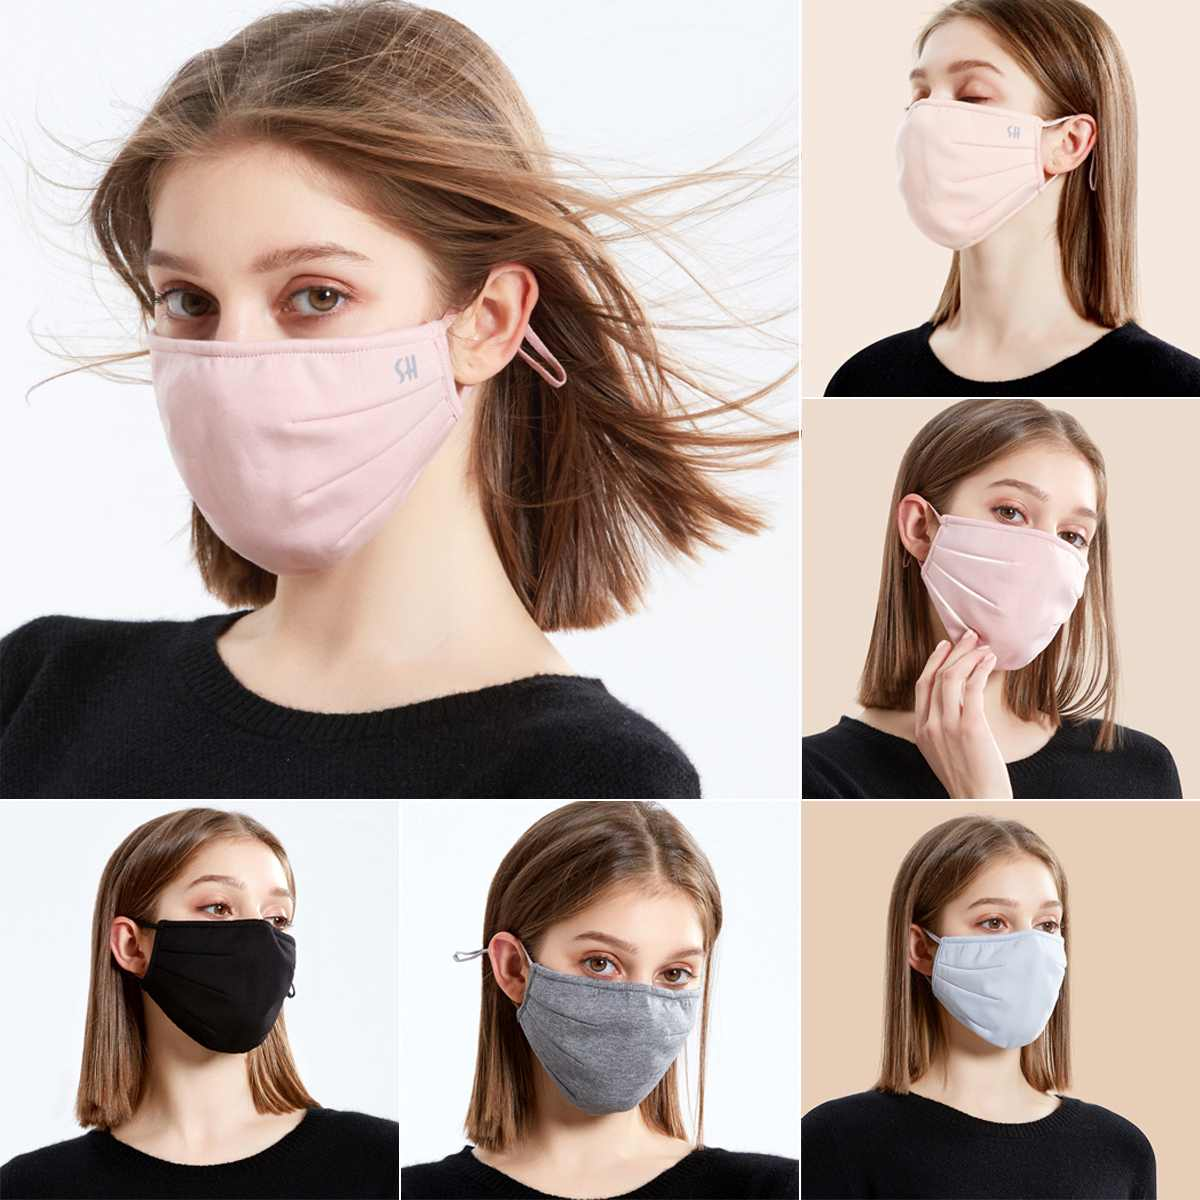 Black Face Mask Anti PM2.5 Air Pollution Mouth Face Mask Anti Dust Washed Reusable Masks Men Women